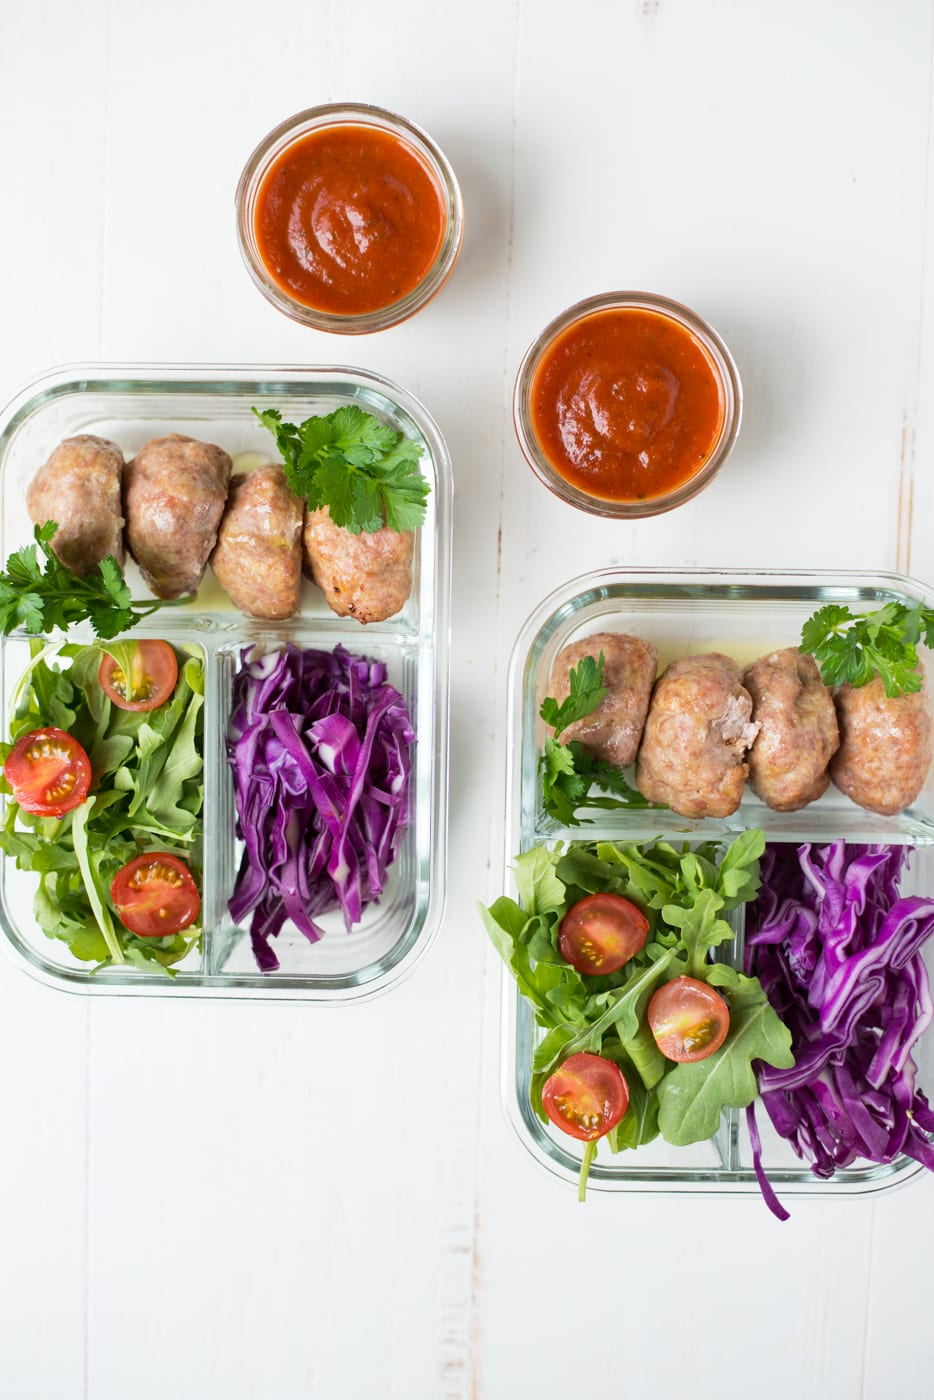 5-ingredient meatballs in glass meal prep containers with cabbage and arugula on white background